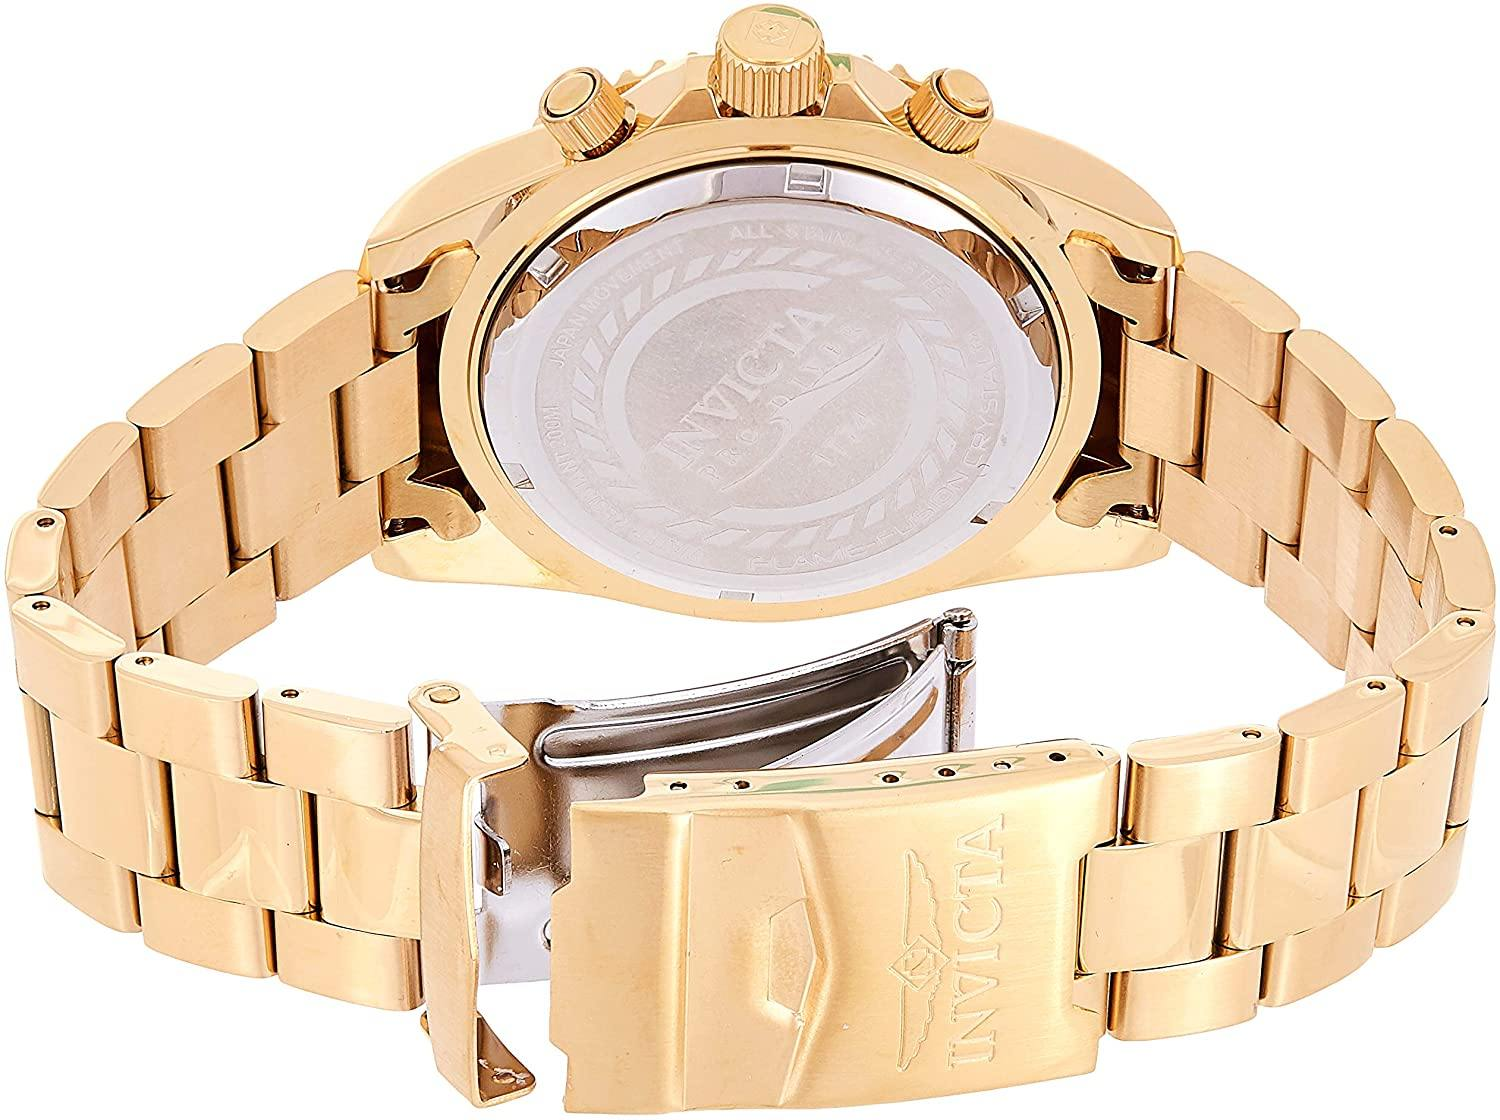 8k Gold Ion-Plated Stainless Steel Watch